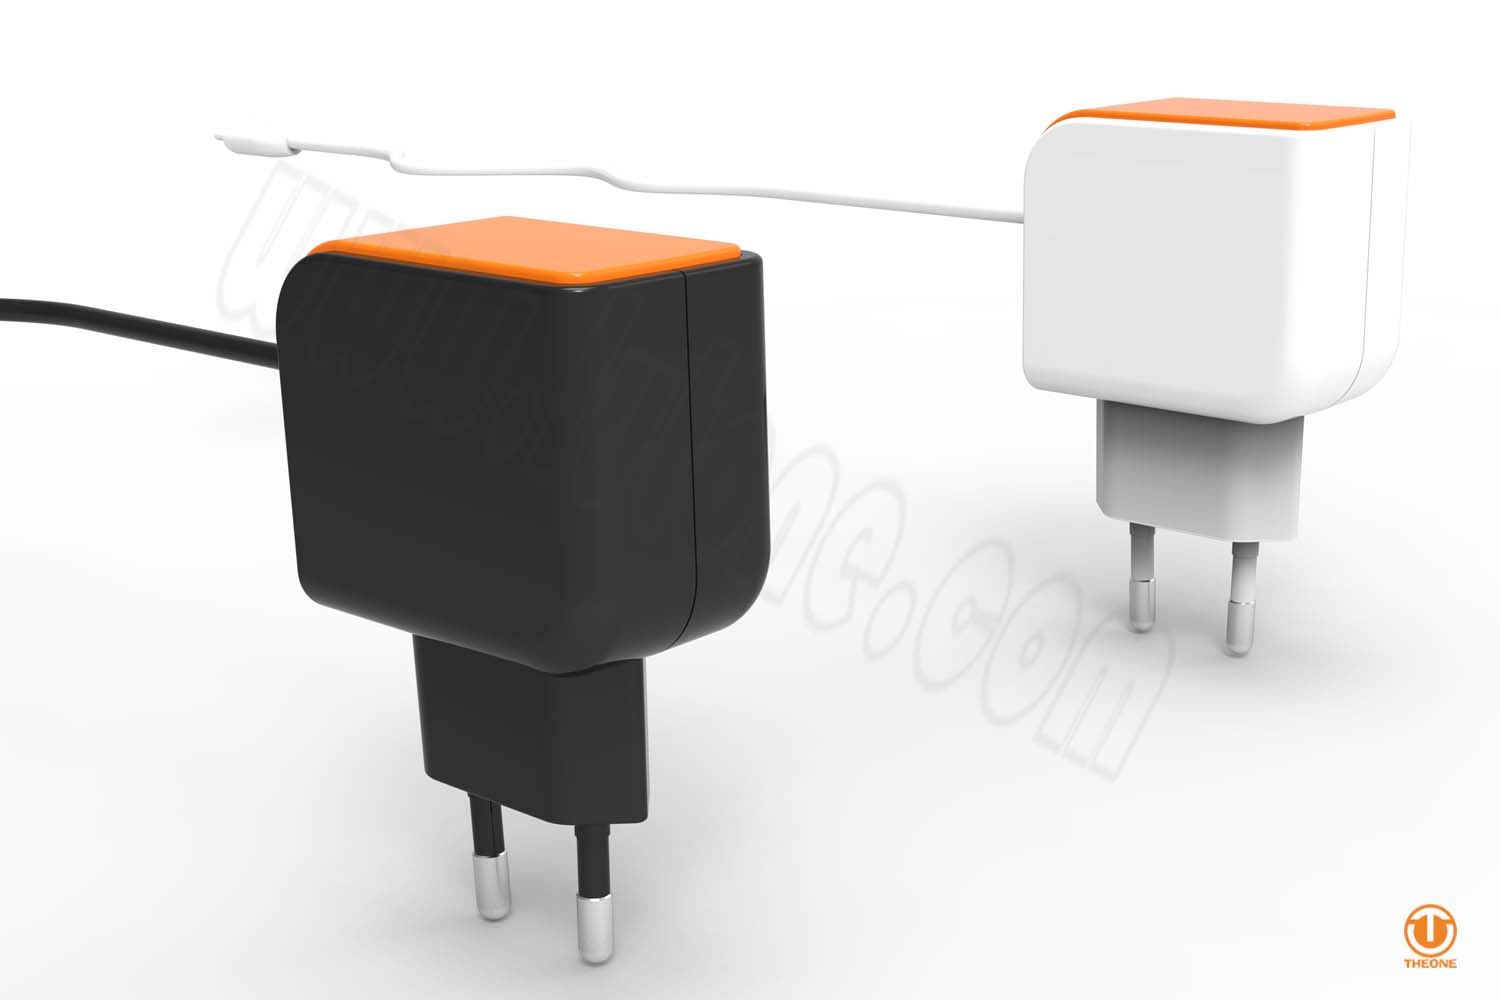 tc02b1-4 wired wall charger